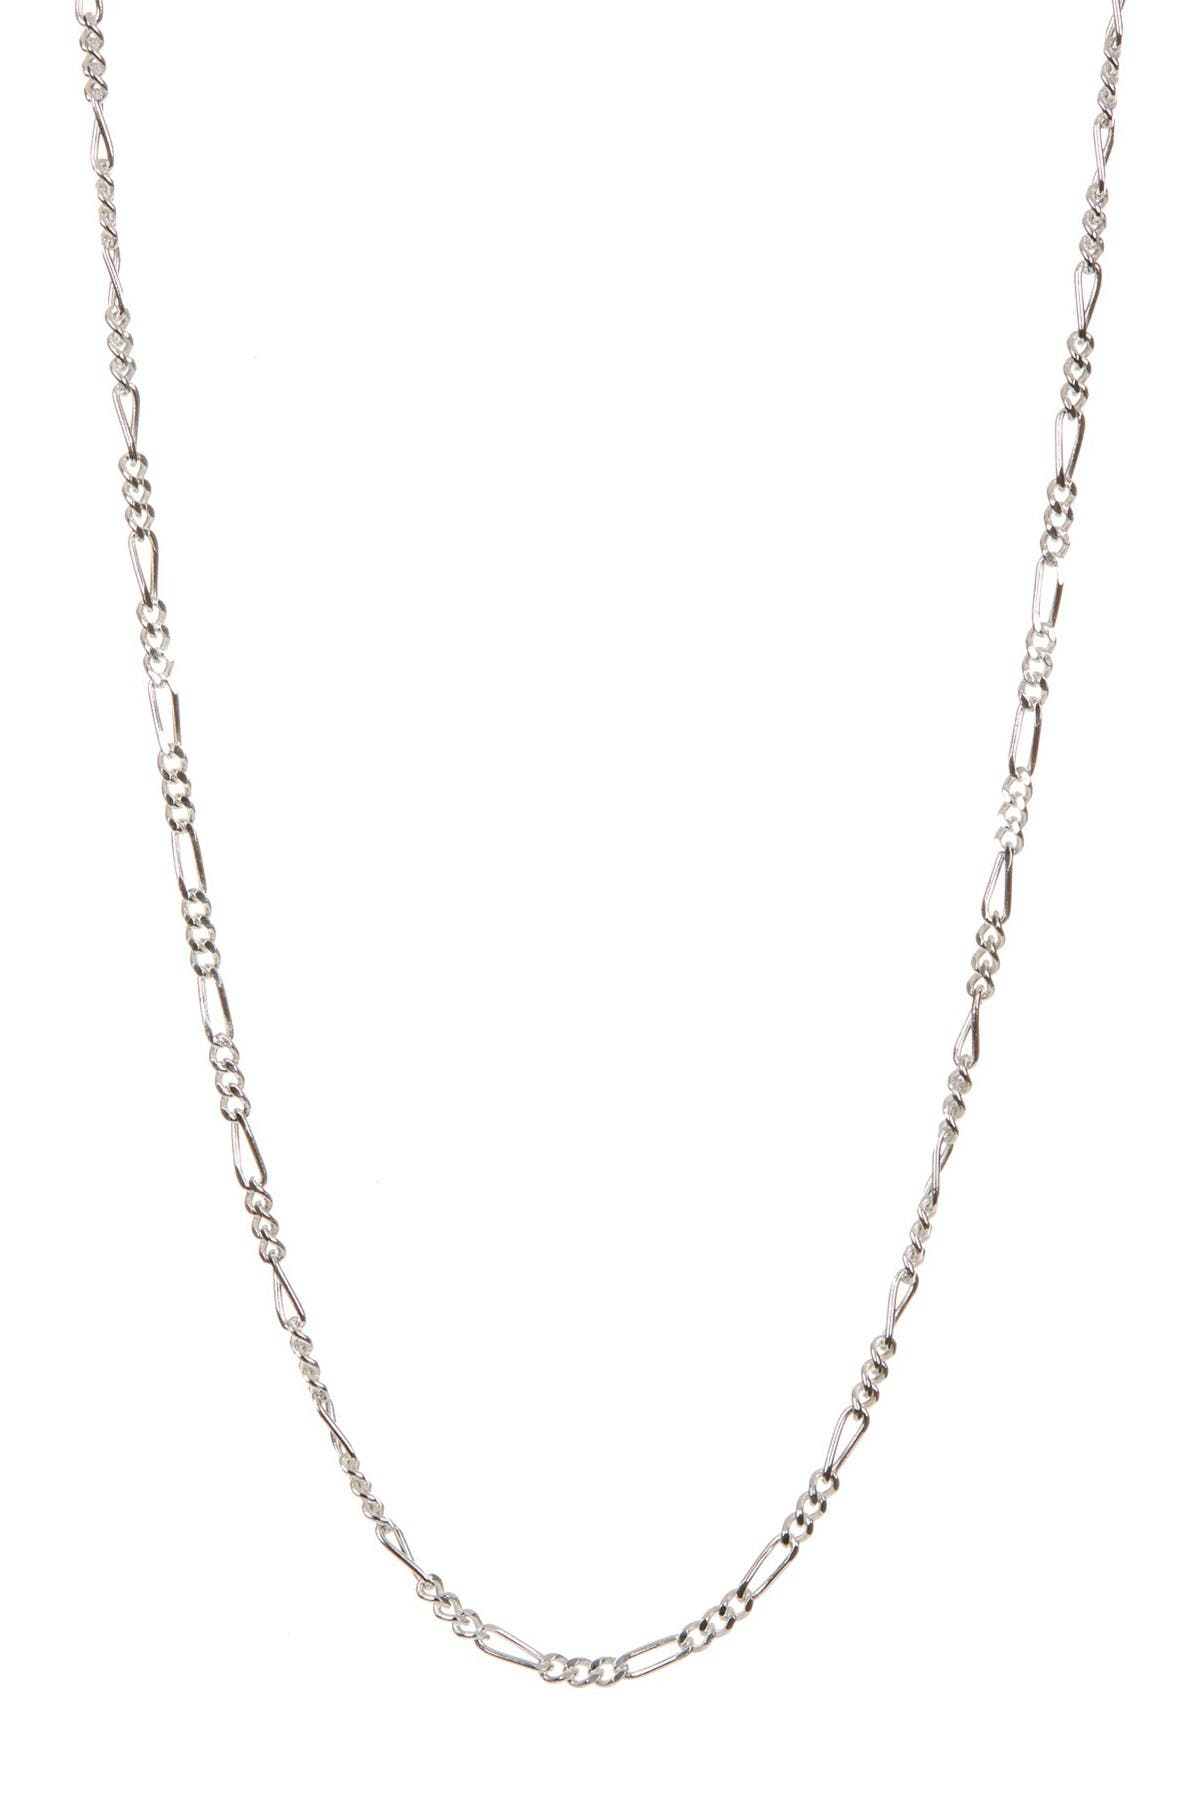 Image of Best Silver Inc. Sterling Silver 050 Gauge Figaro Chain 20""